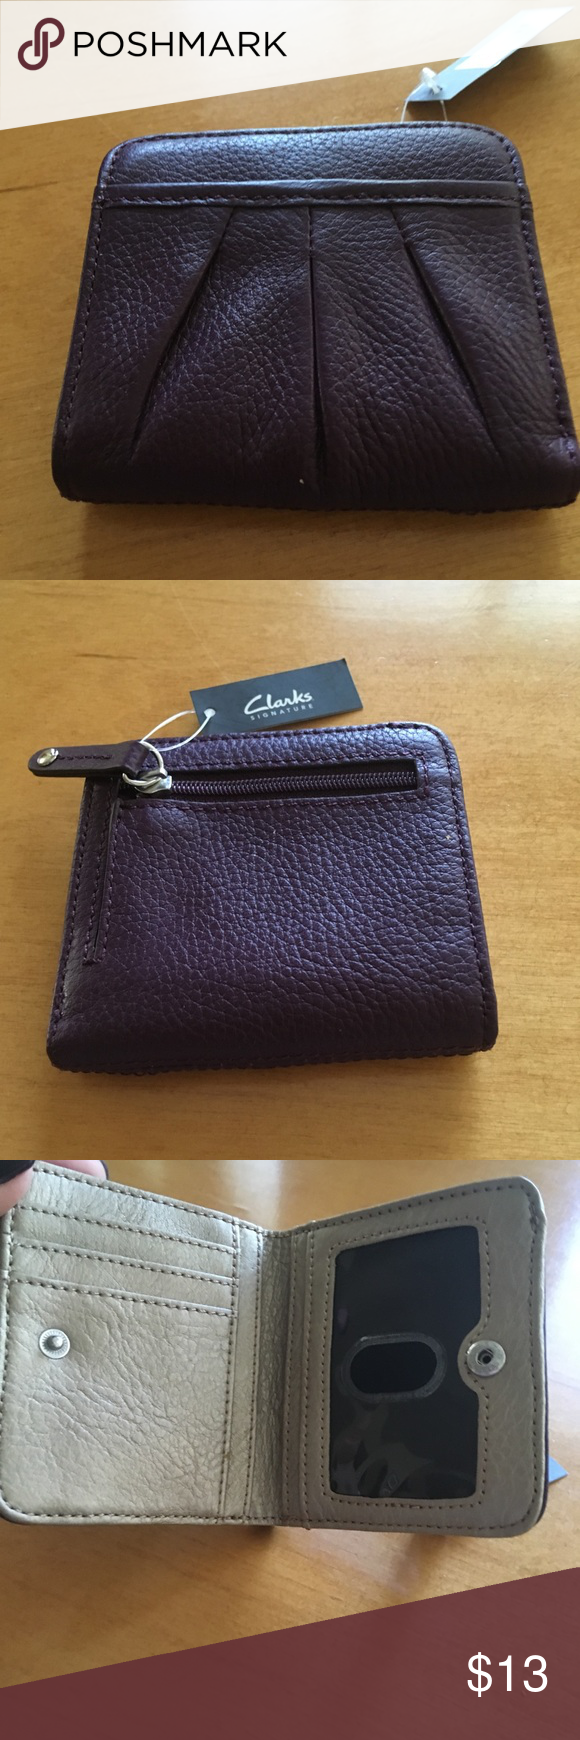 fa61bf3b9bc Clark's wallet NWT Clark's genuine leather purple wallet. Clarks Bags  Wallets